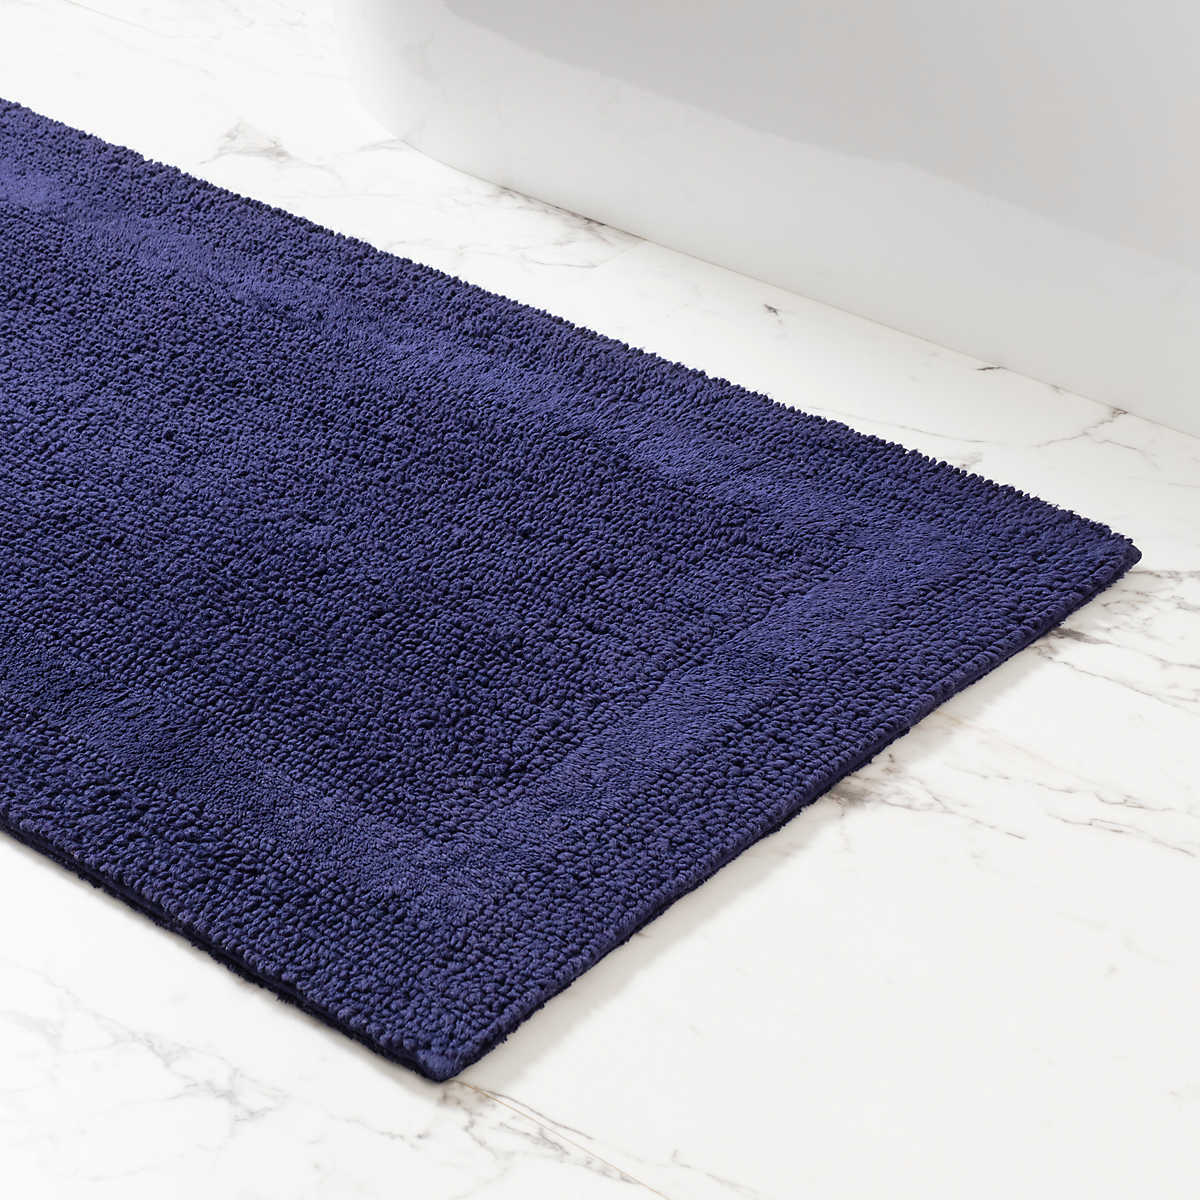 signature indigo bath rug | pine cone hill Bathroom Rugs